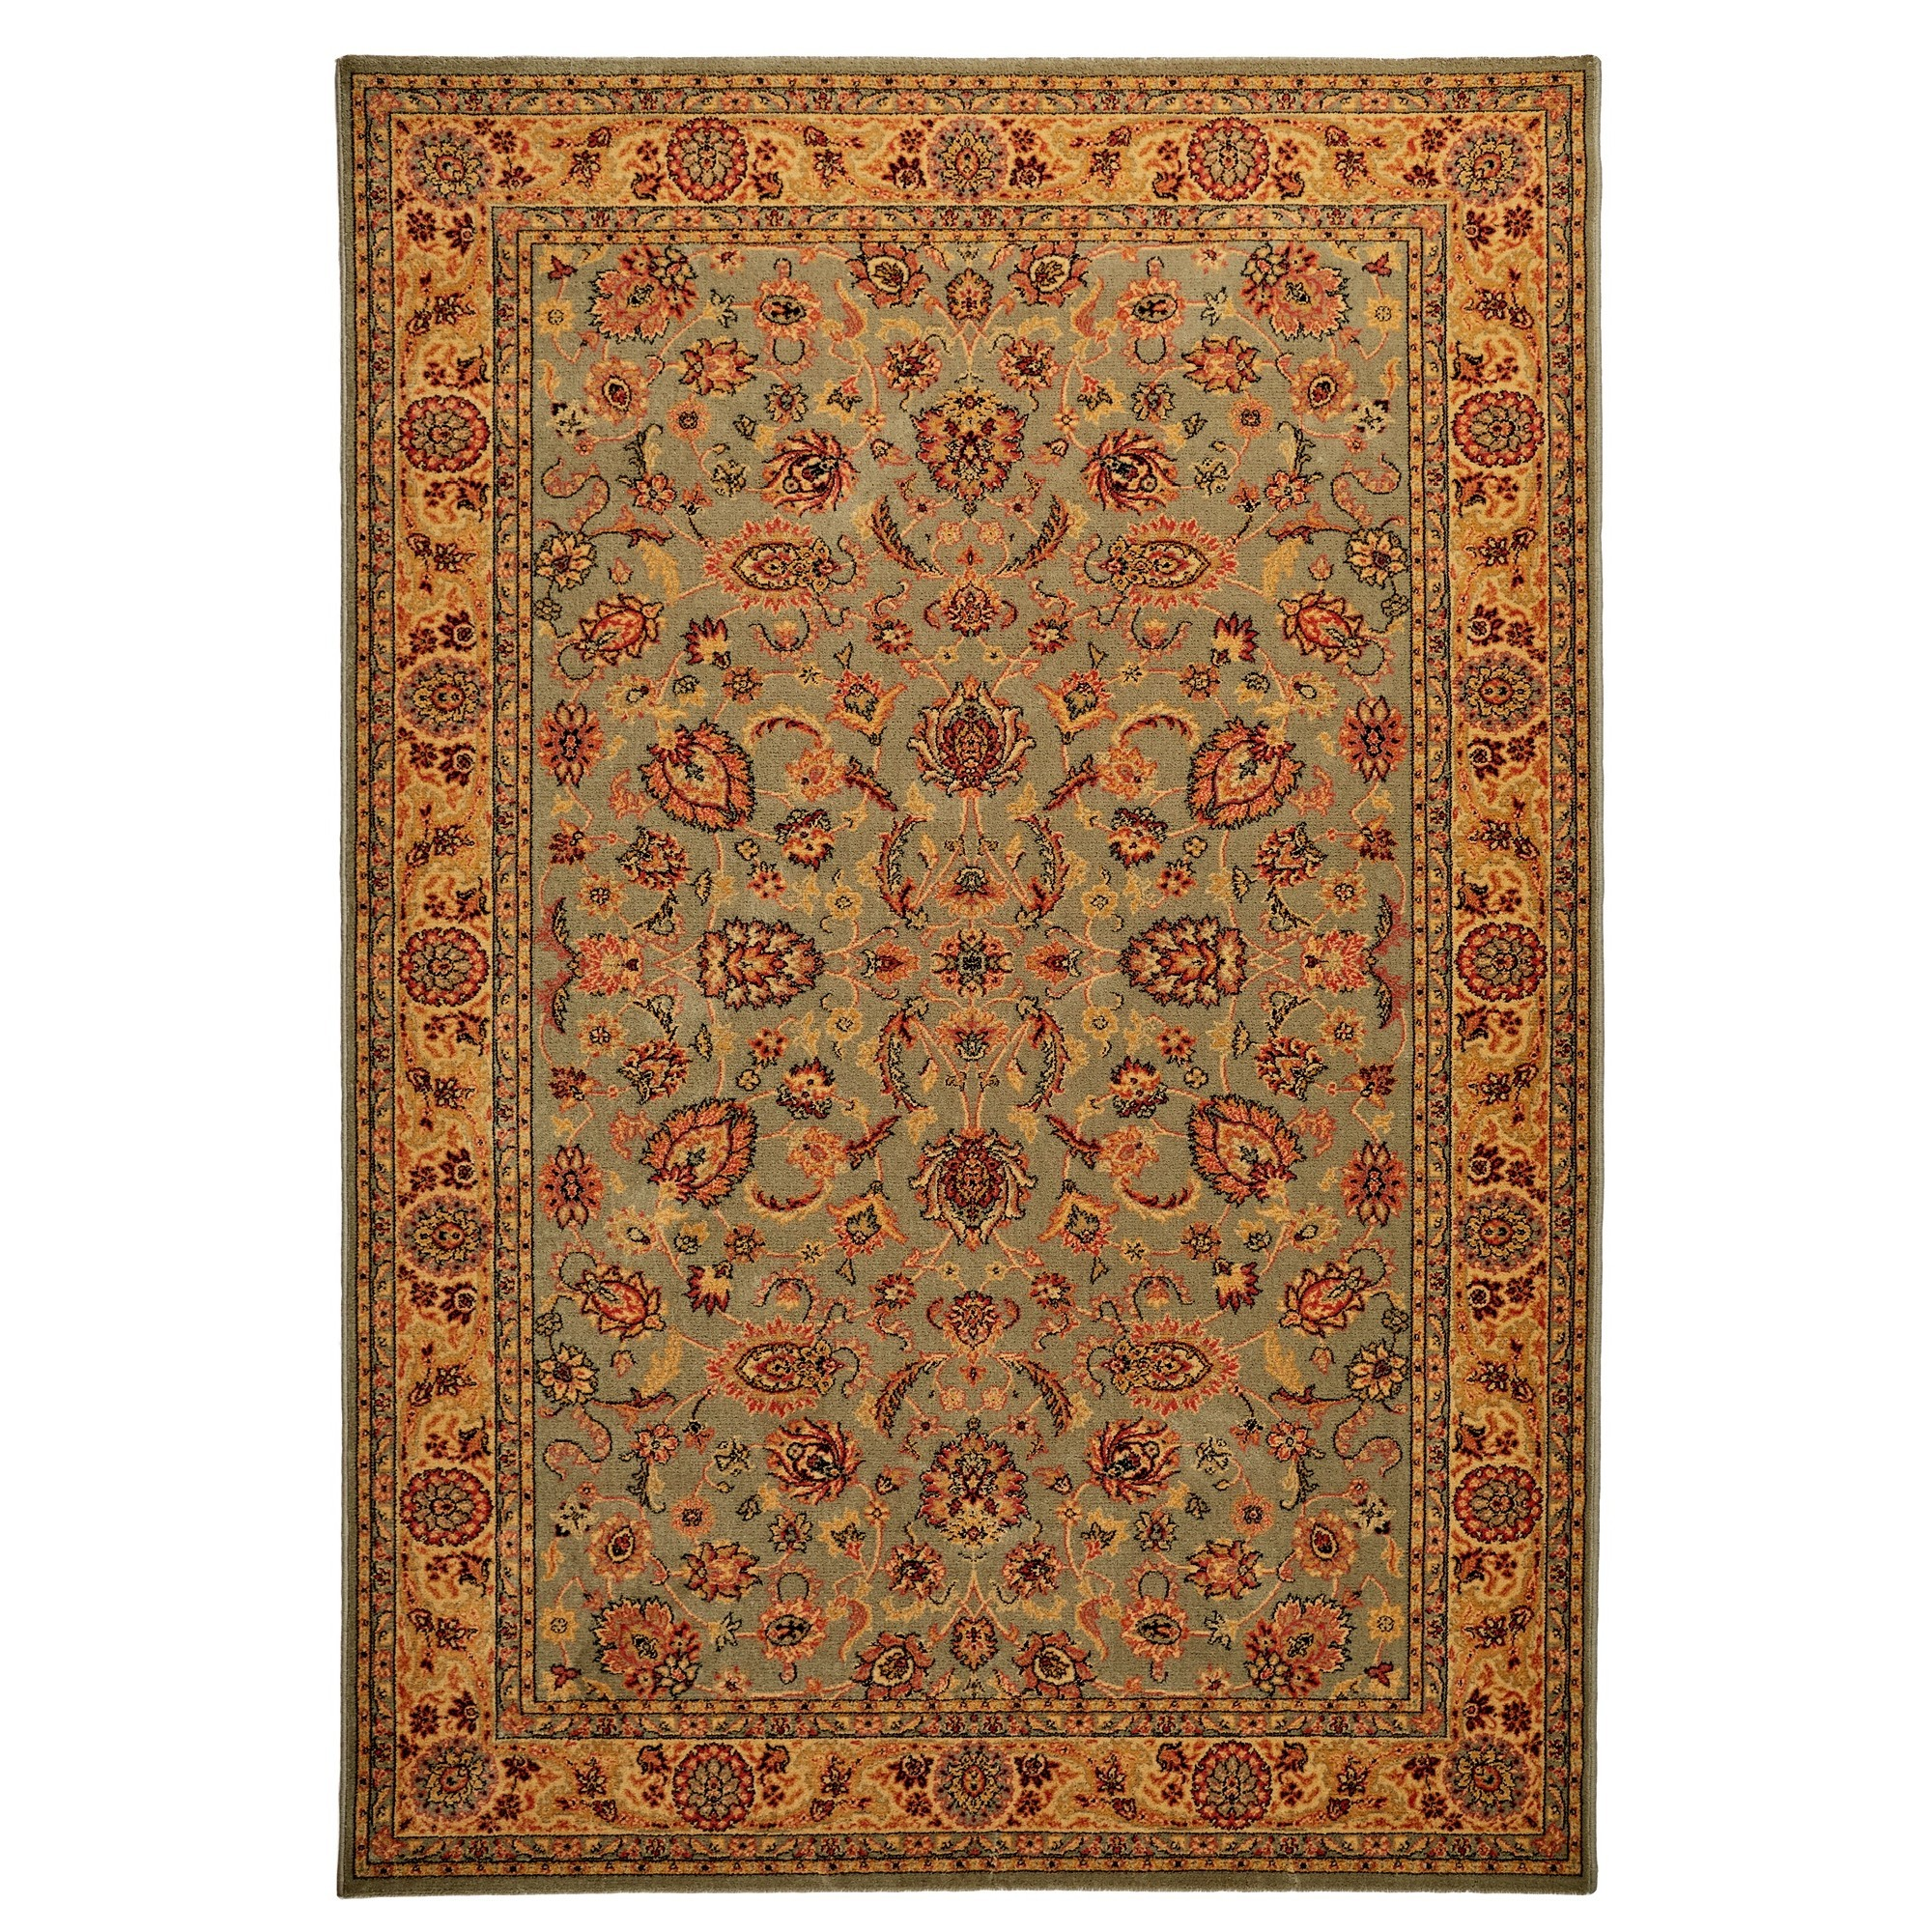 Royal Allover Wool Oriental Rug, 330x240cm